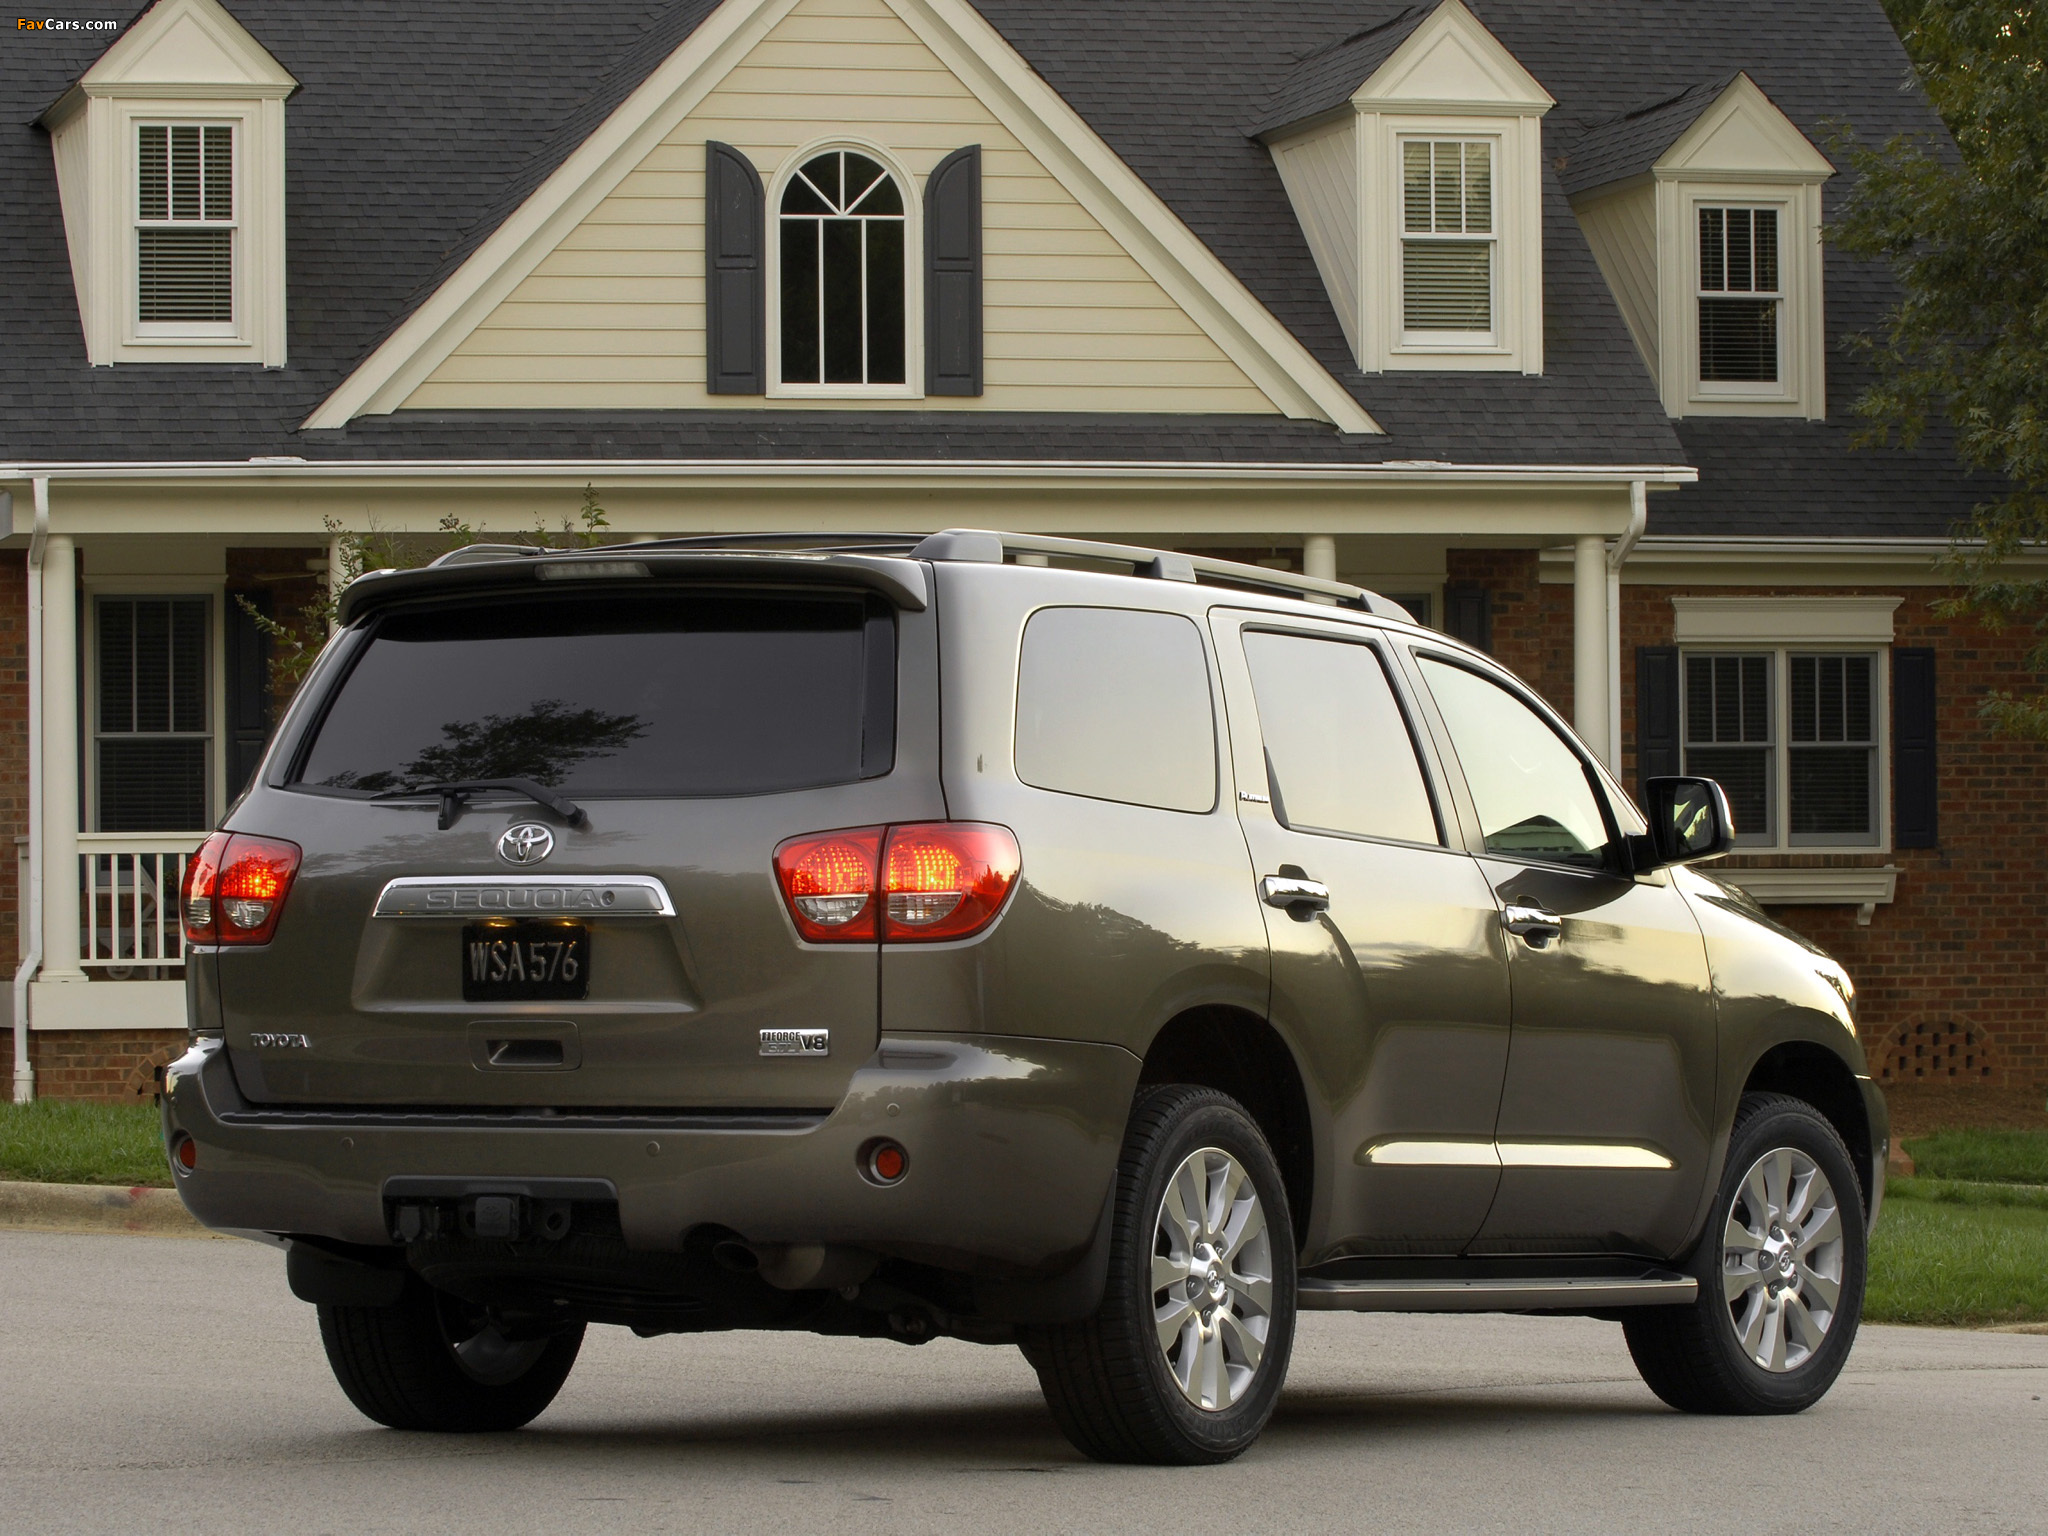 Toyota Sequoia Limited 2007 images (2048 x 1536)